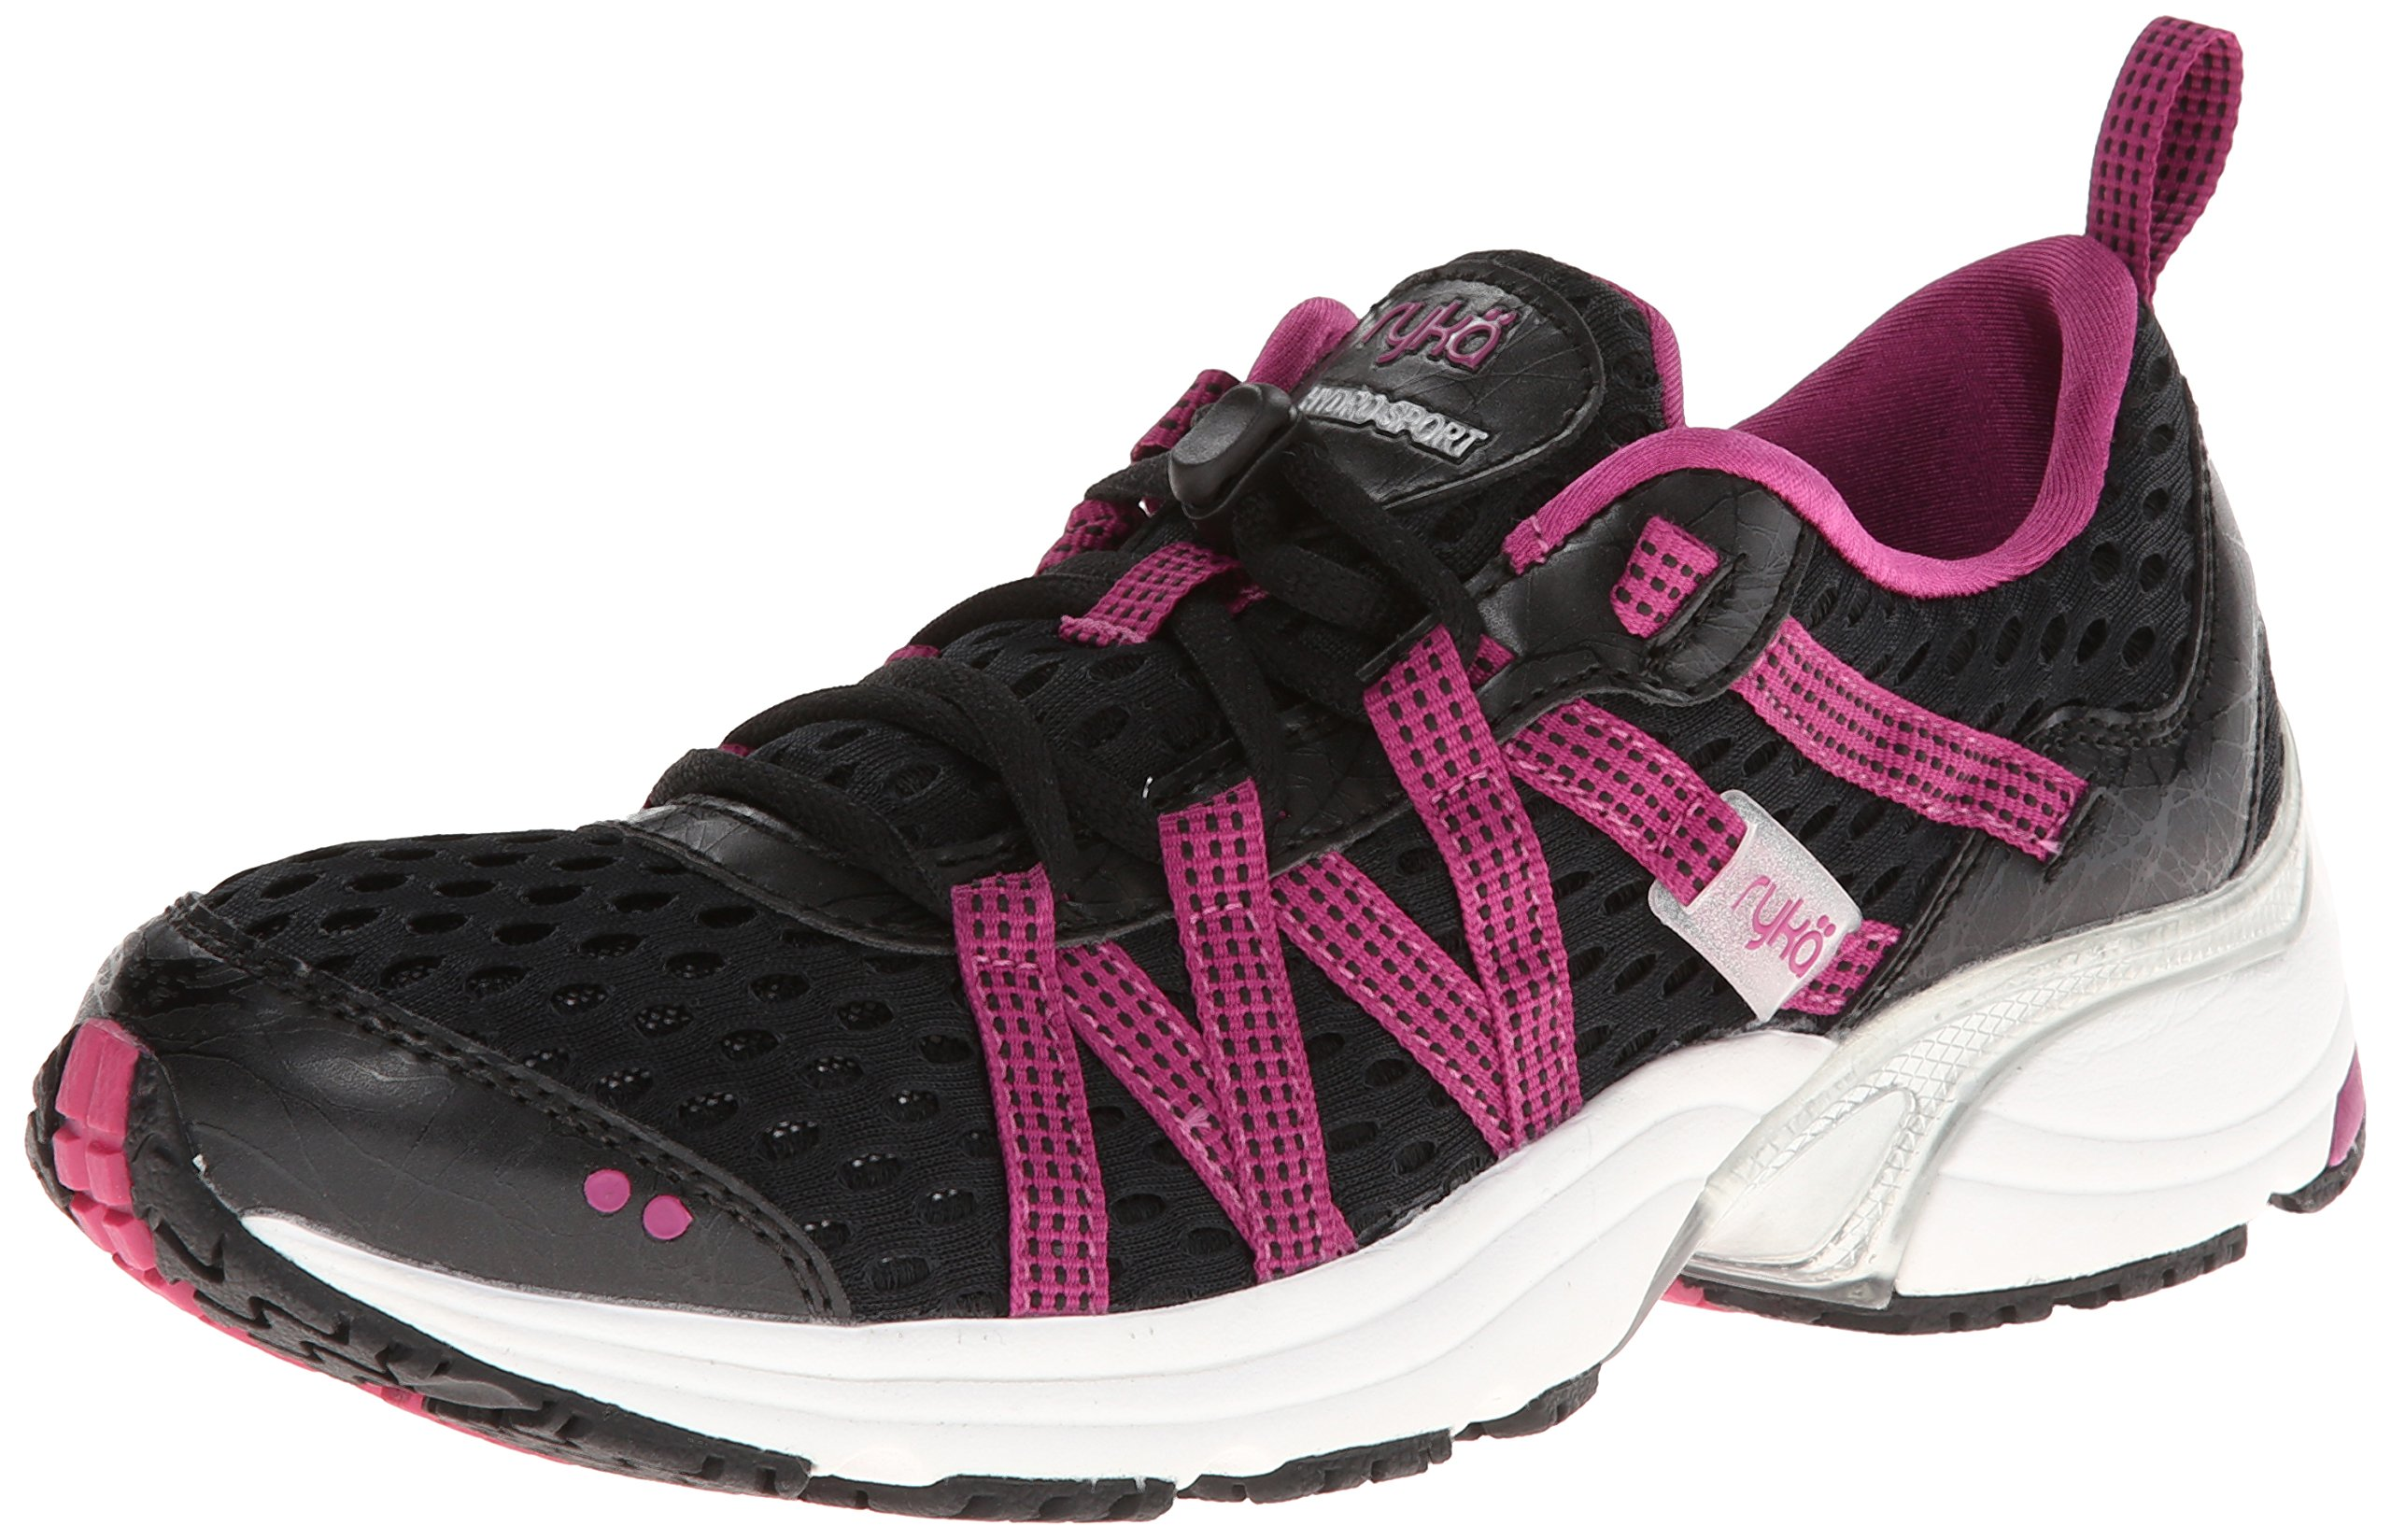 RYKA Women's Hydro Sport Water Shoe Cross Trainer, Black/Berry/Chrome Silver, 6.5 M US by Ryka